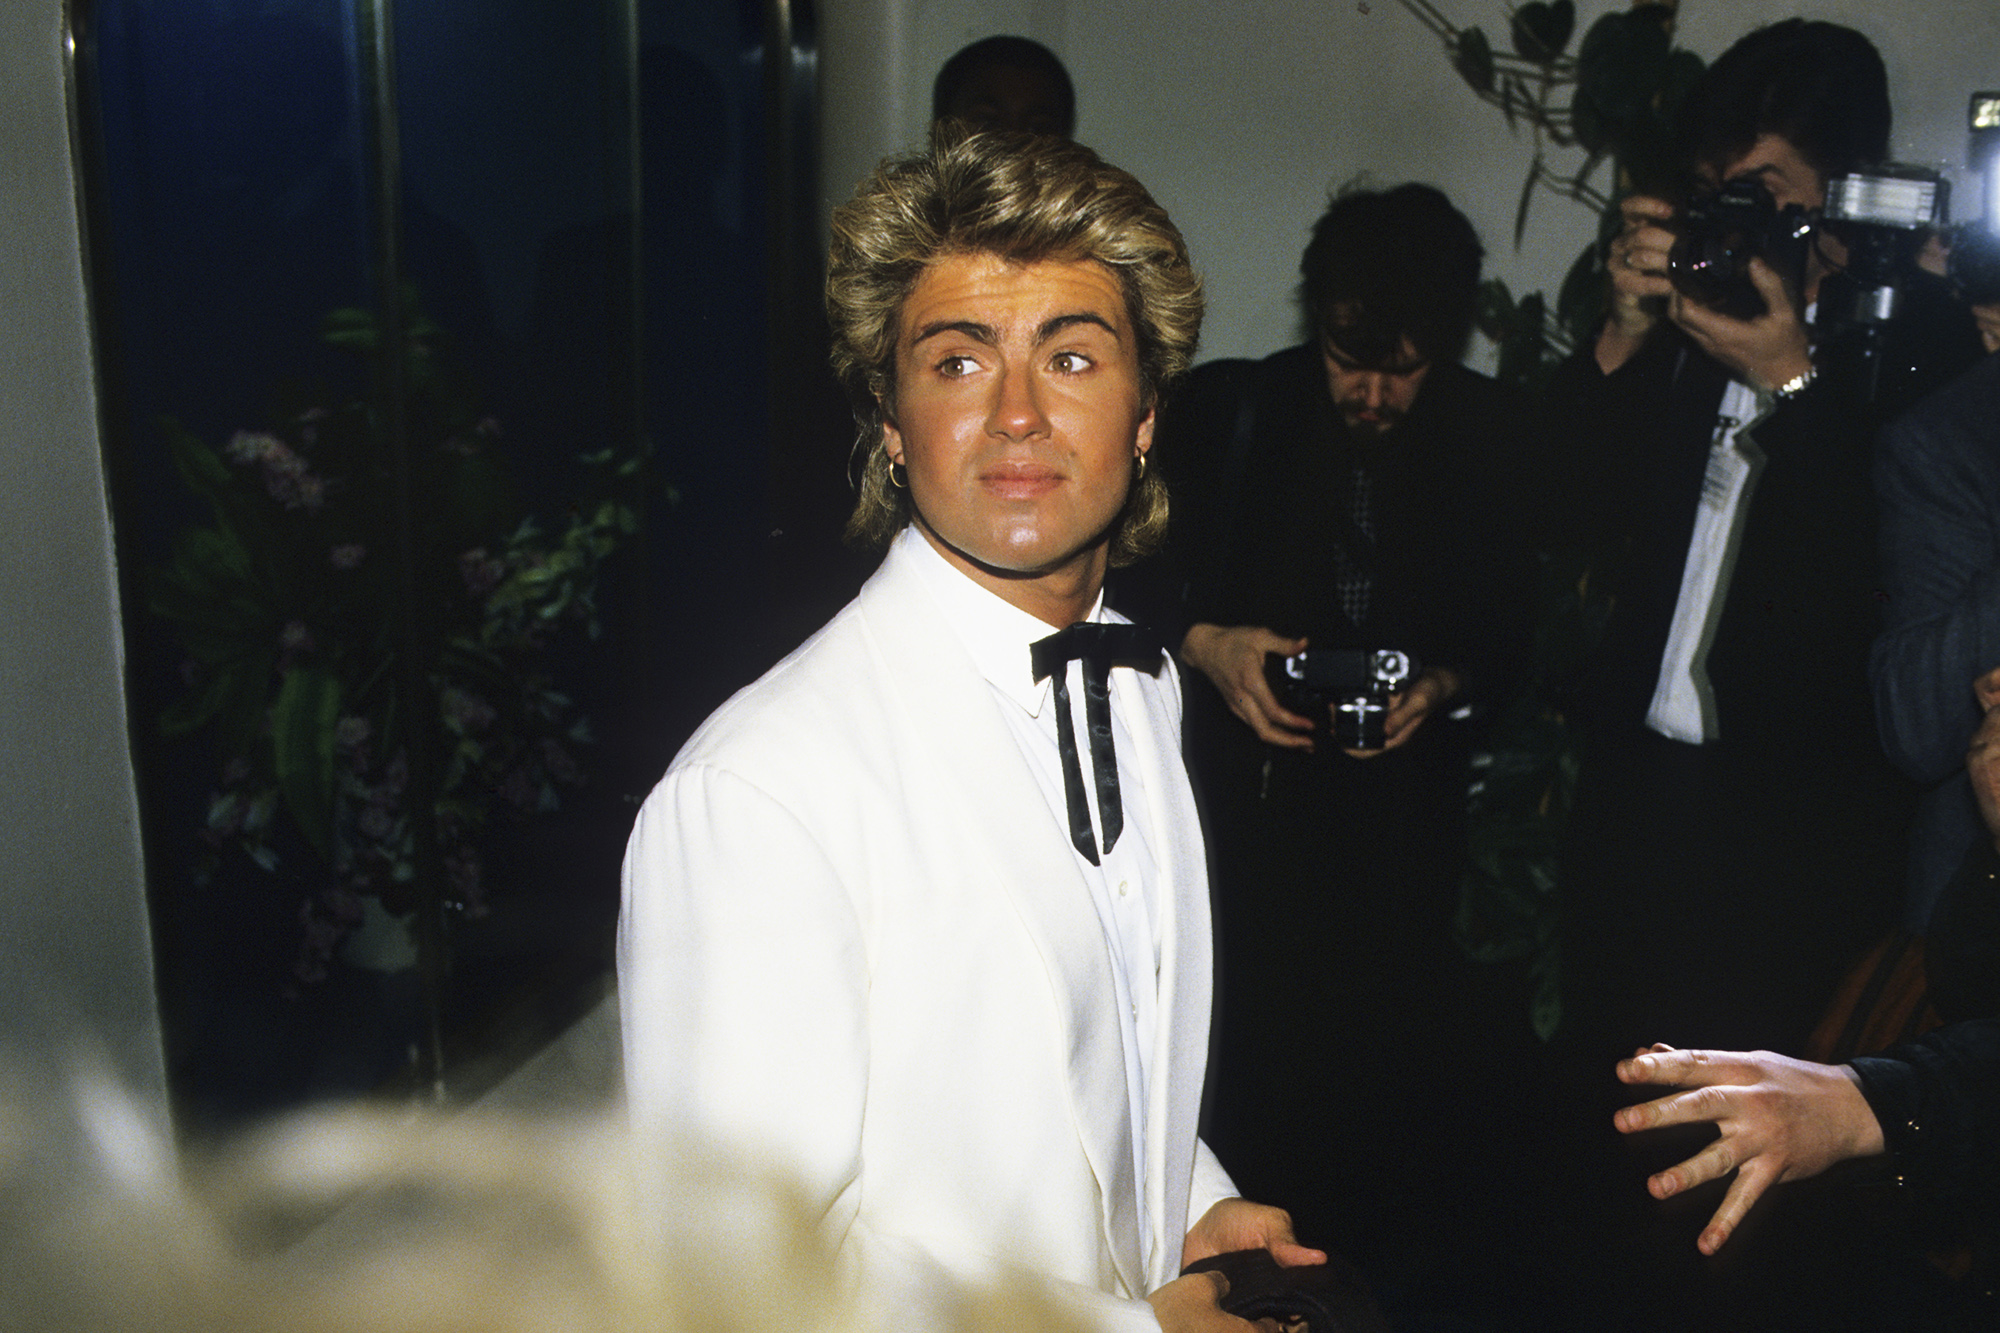 George Michael attends the BRIT Awards in London, on Feb. 11, 1985.